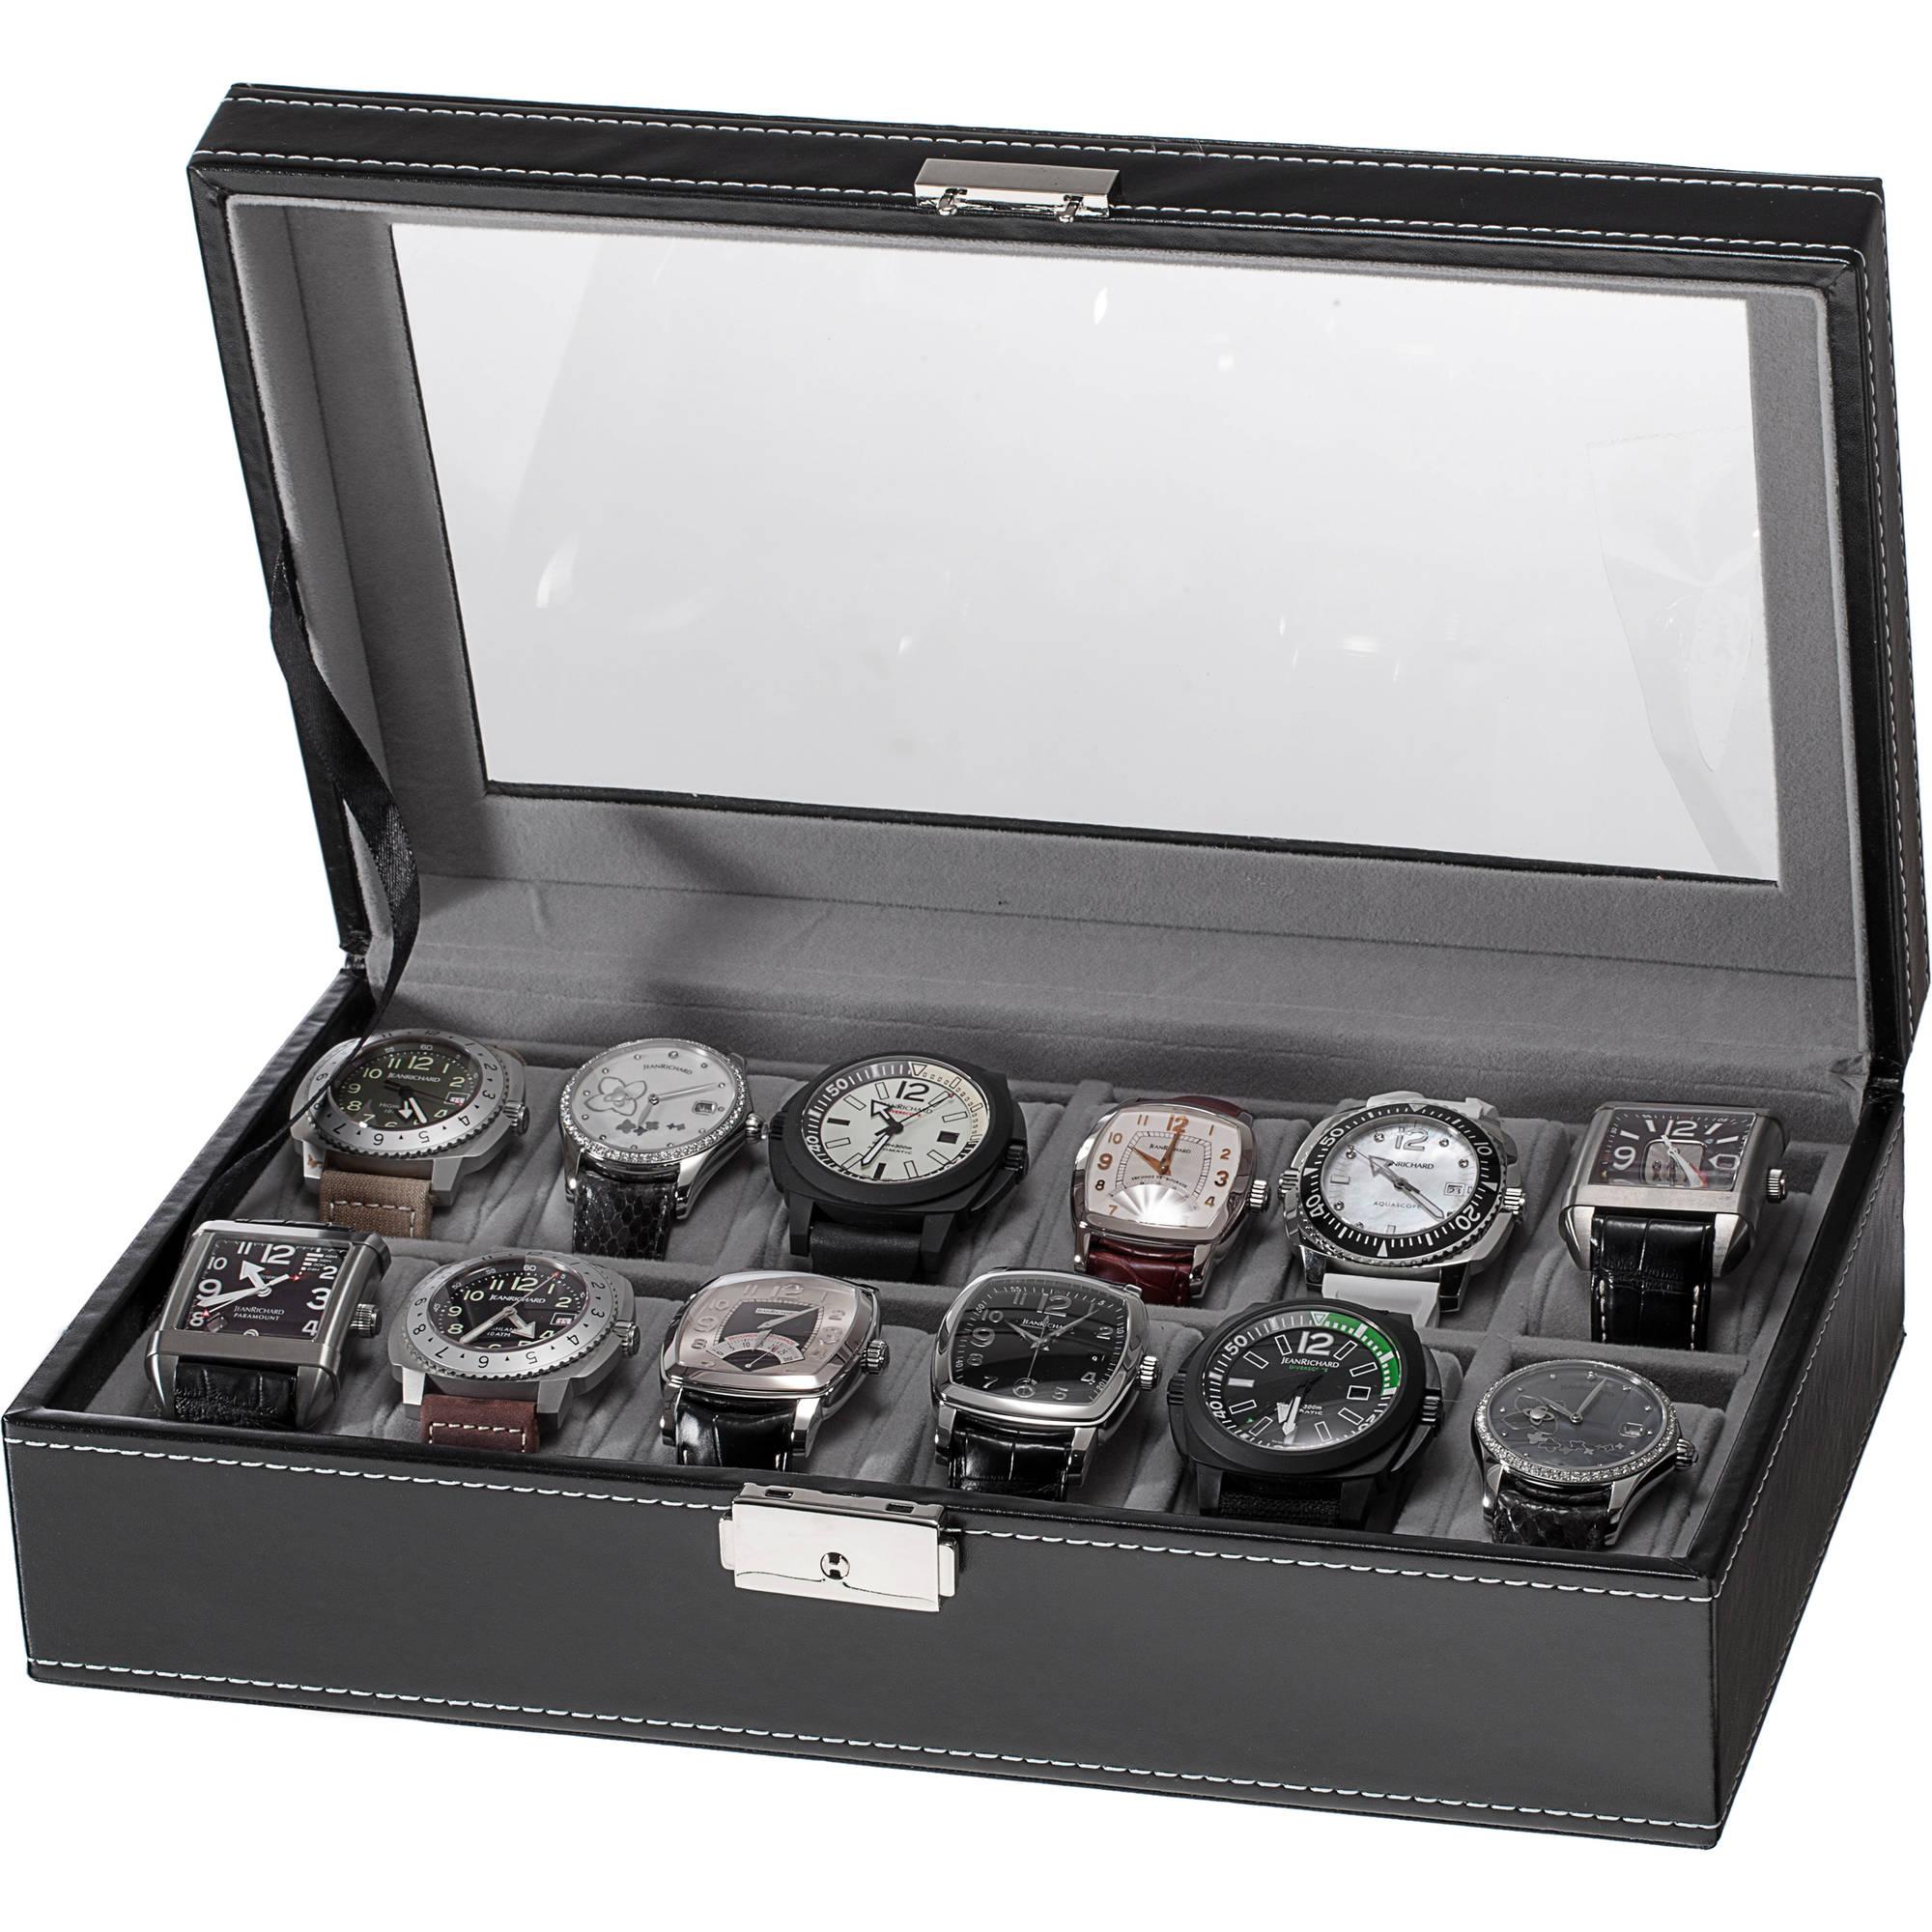 12 Slot Watch Box, Black